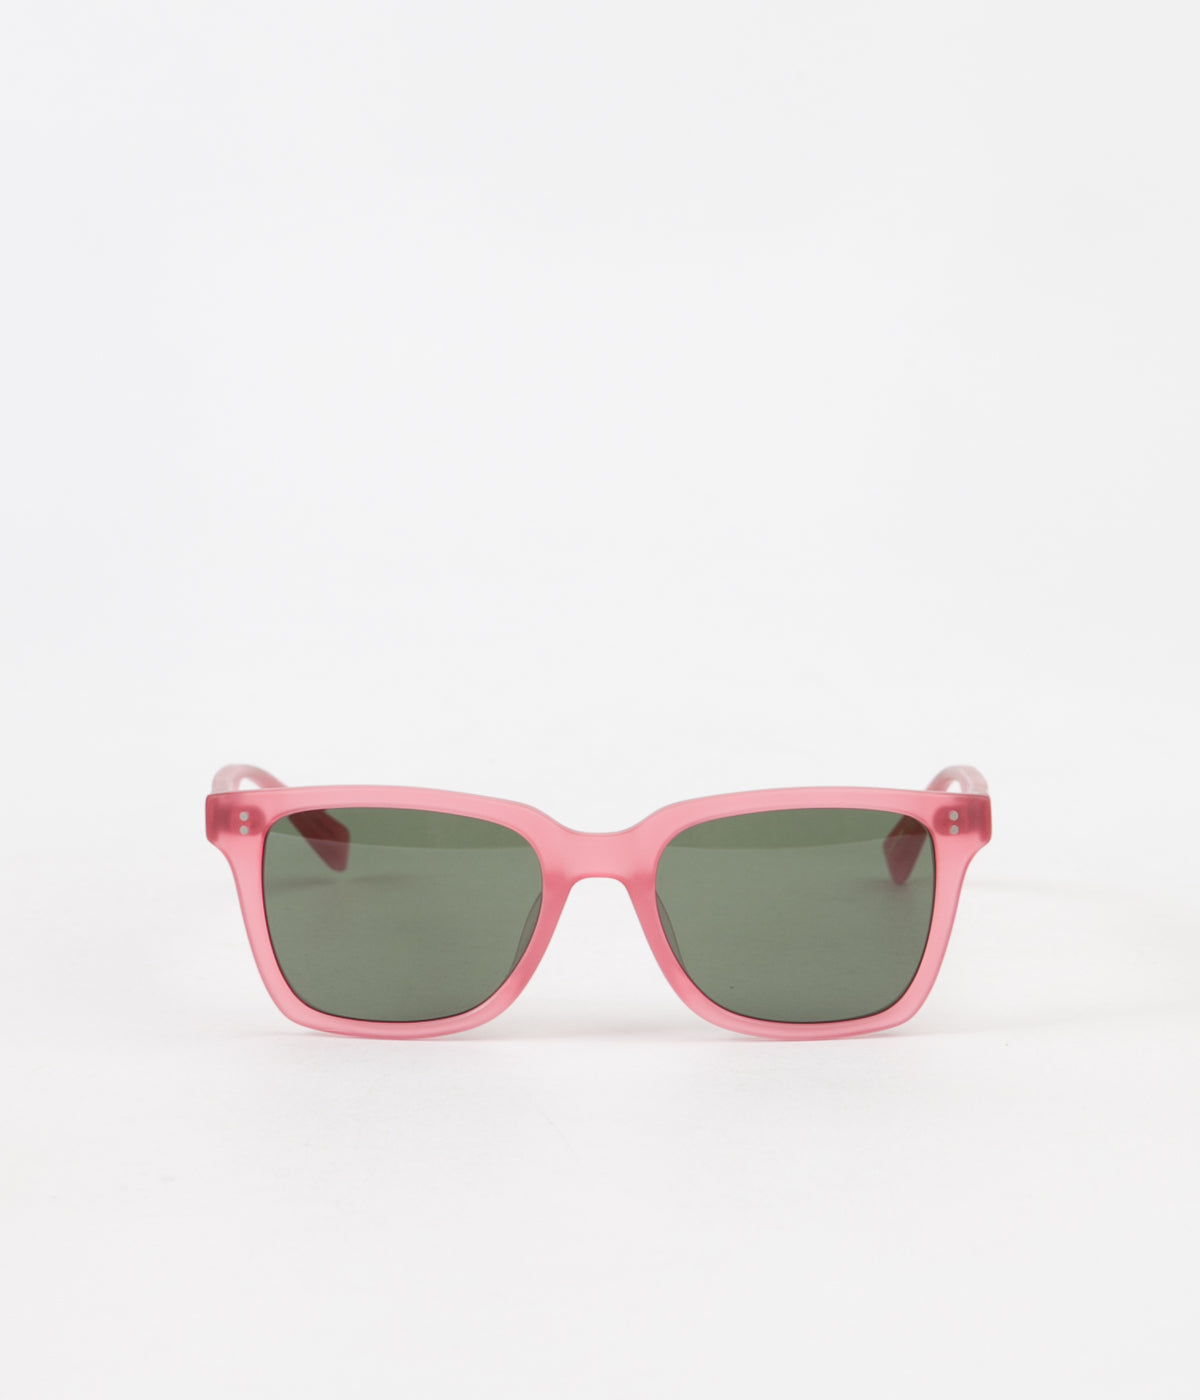 Stussy Angelo Sunglasses - Rose / Green